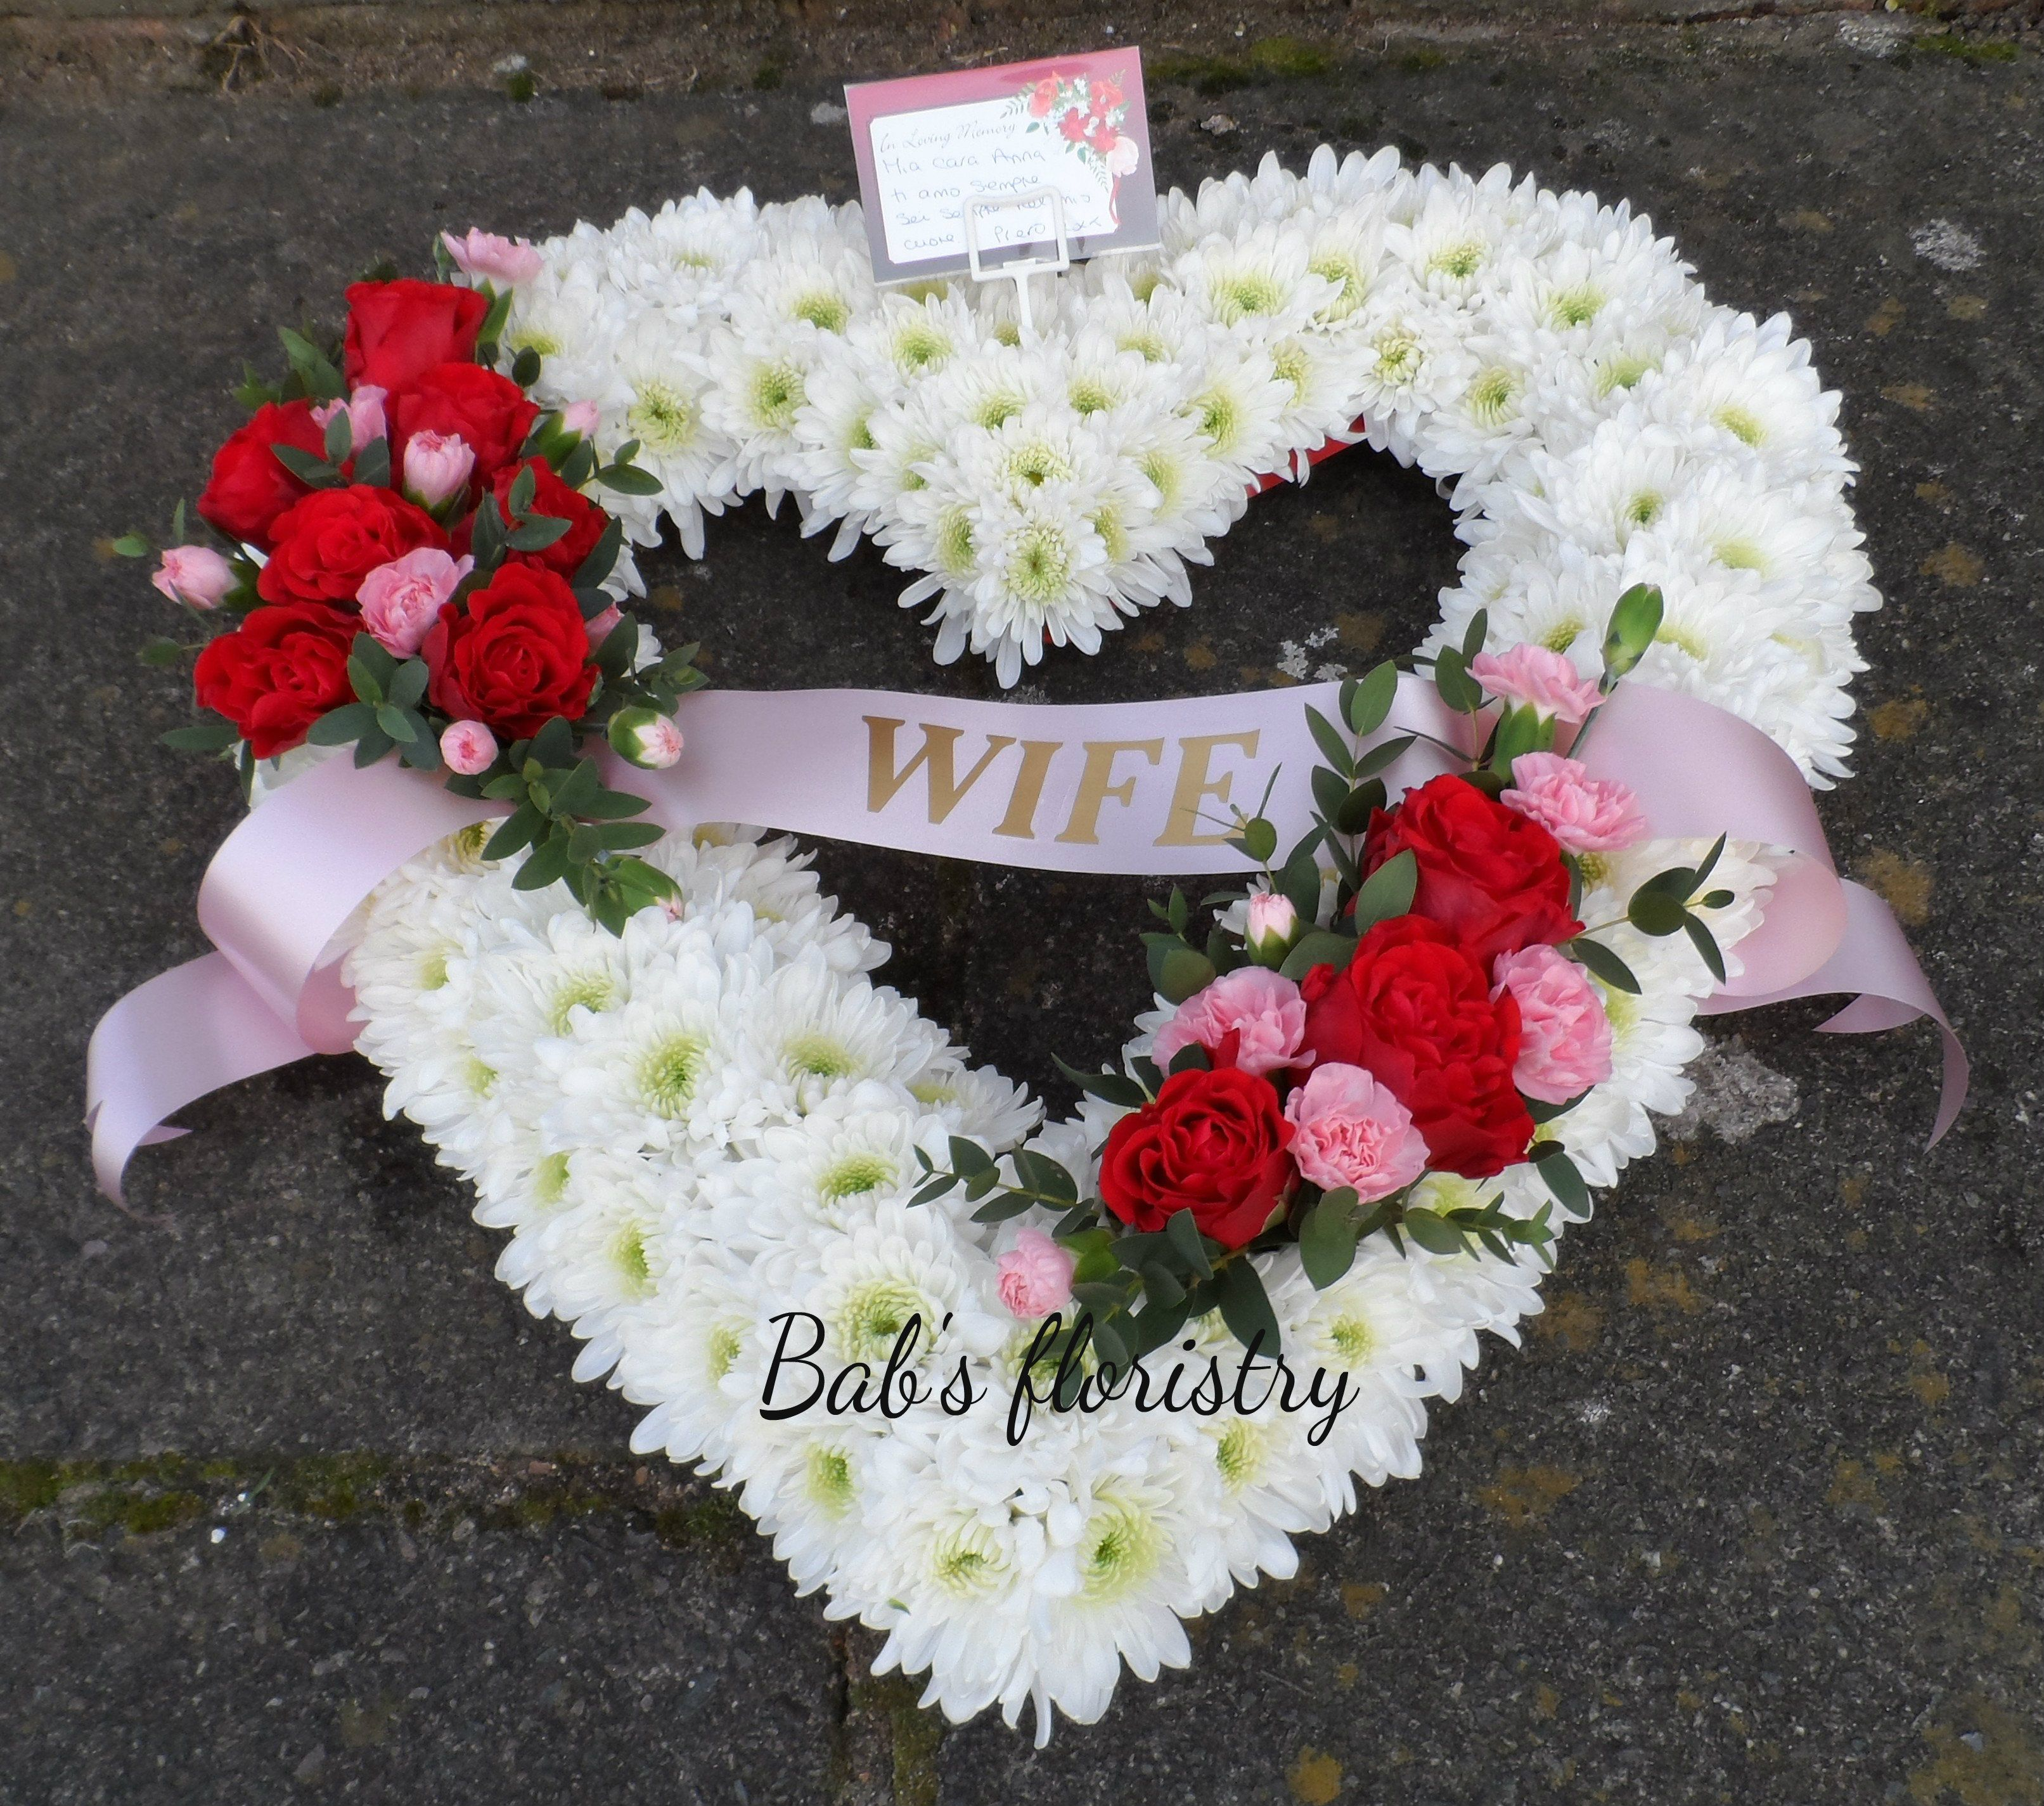 Open Heart Sympathy Tribute With Two Sprays Of Flowers On A Base Of